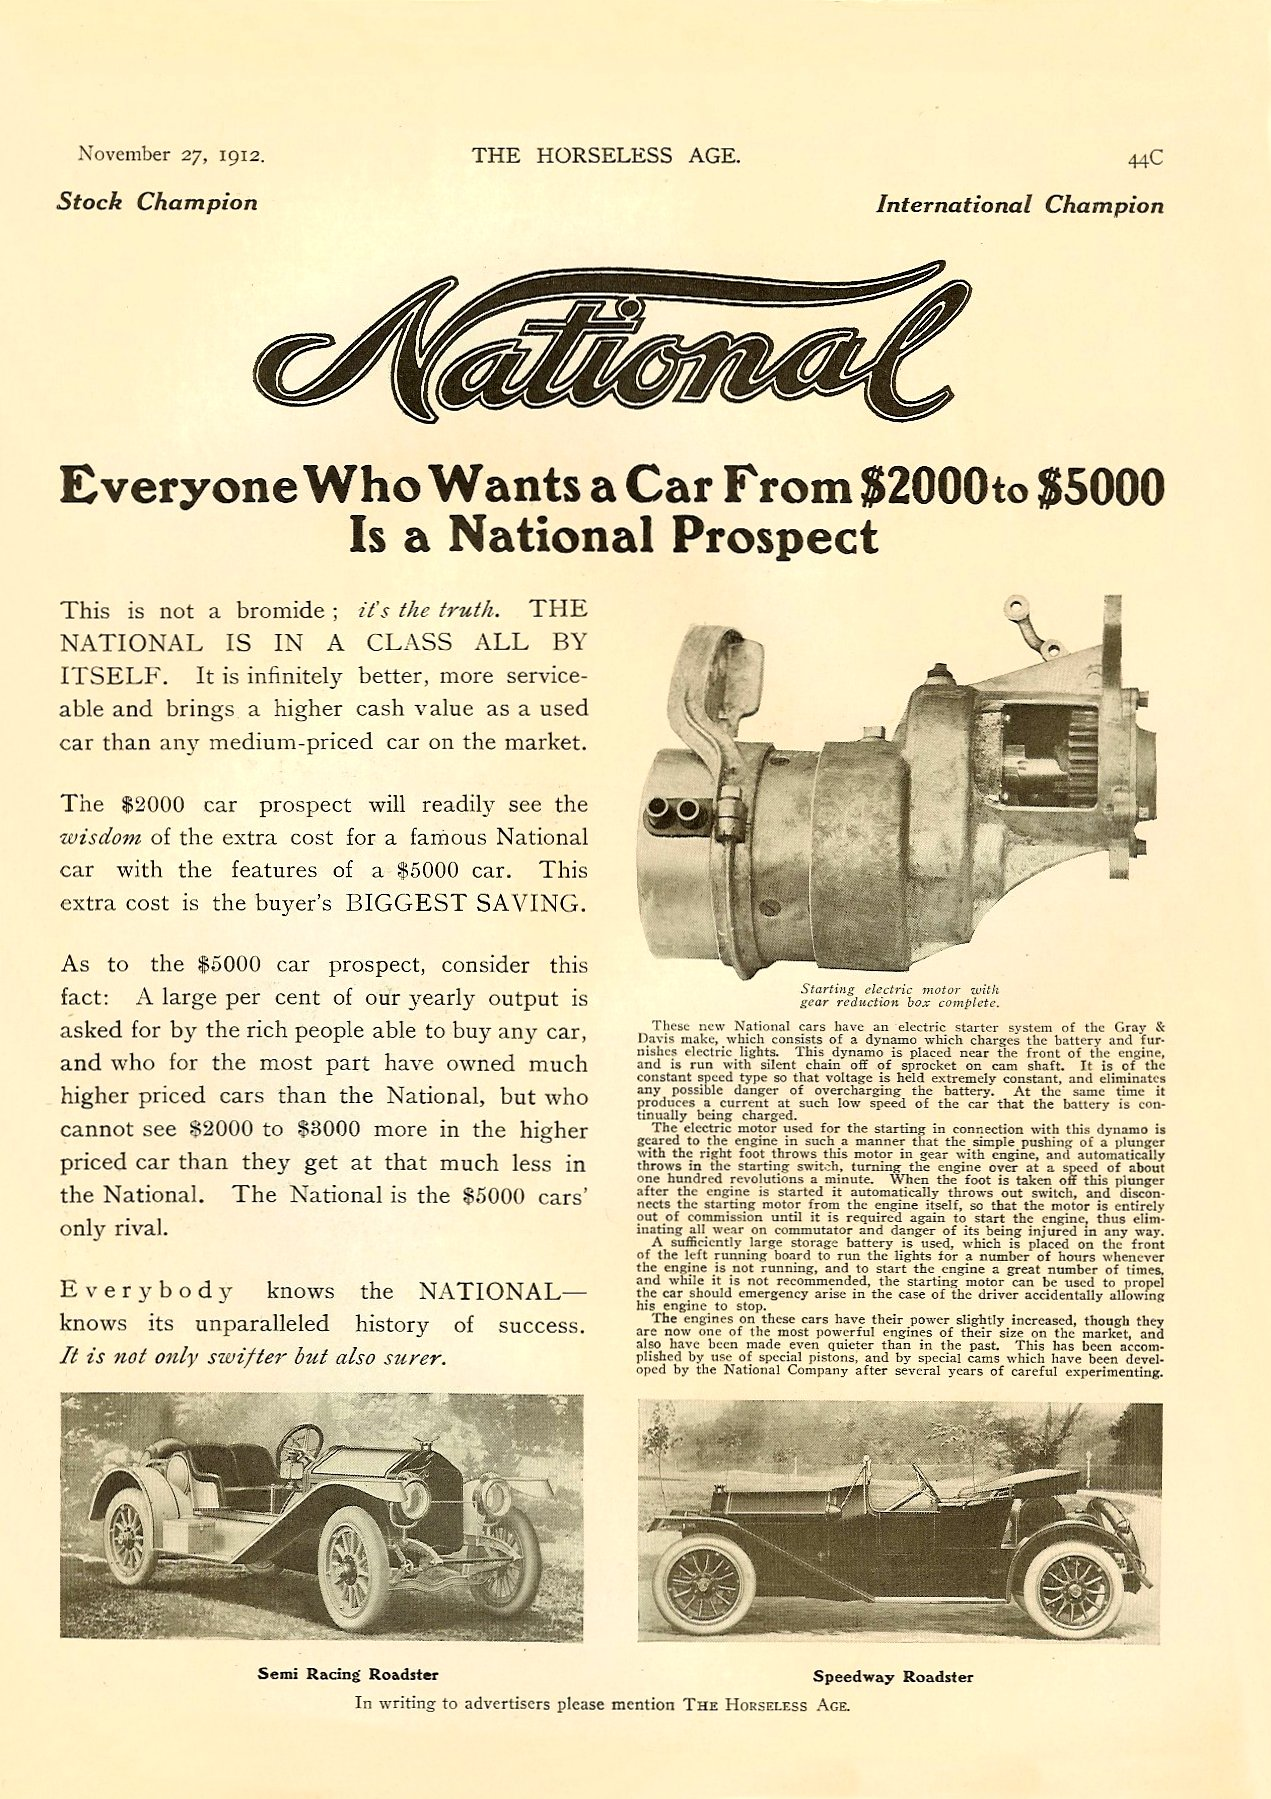 1913 11 27 NATIONAL Improved Series V Fives Models – $2750 to $3400 THE HORSELESS AGE Vol. 30, No. 22 November 27, 1912 9″x12″ page 44C